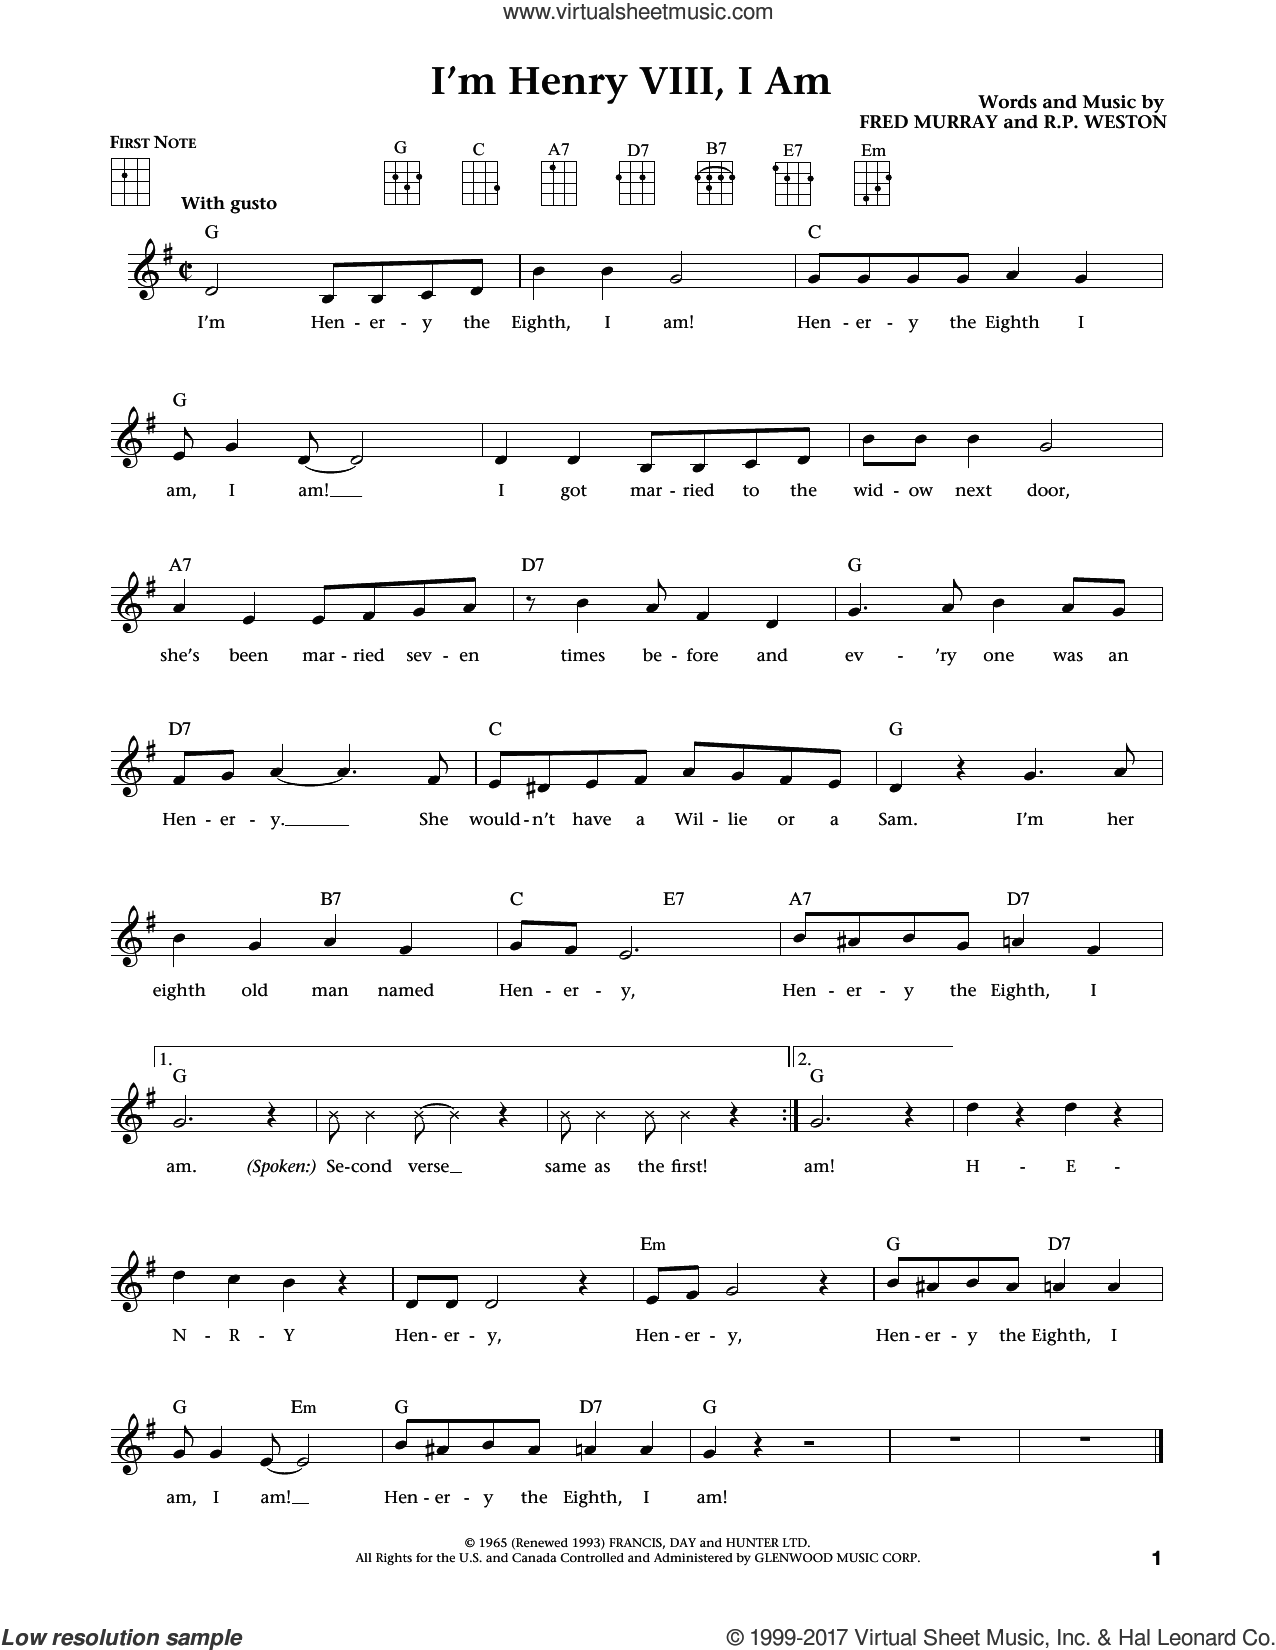 I'm Henry VIII, I Am (from The Daily Ukulele) (arr. Liz and Jim Beloff) sheet music for ukulele by Herman's Hermits, Jim Beloff, Liz Beloff, Fred Murray and R.P. Weston, intermediate skill level